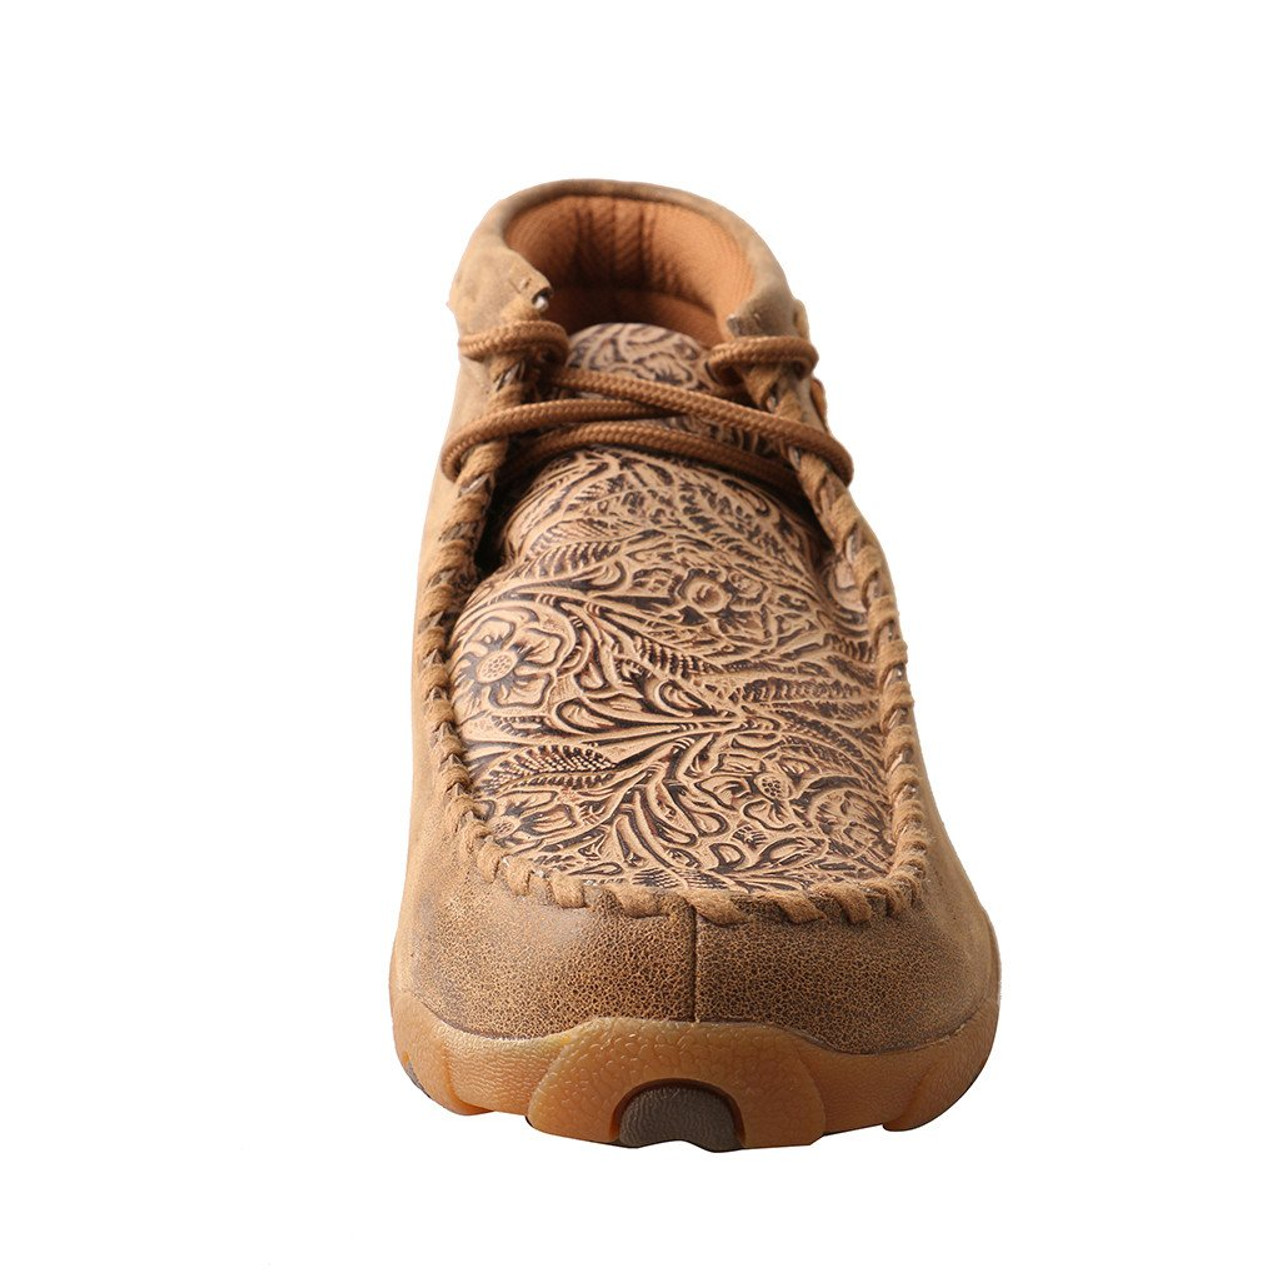 WDM0081 Twisted X Women's Driving Moccasins Brown//Tooled Flowers NEW